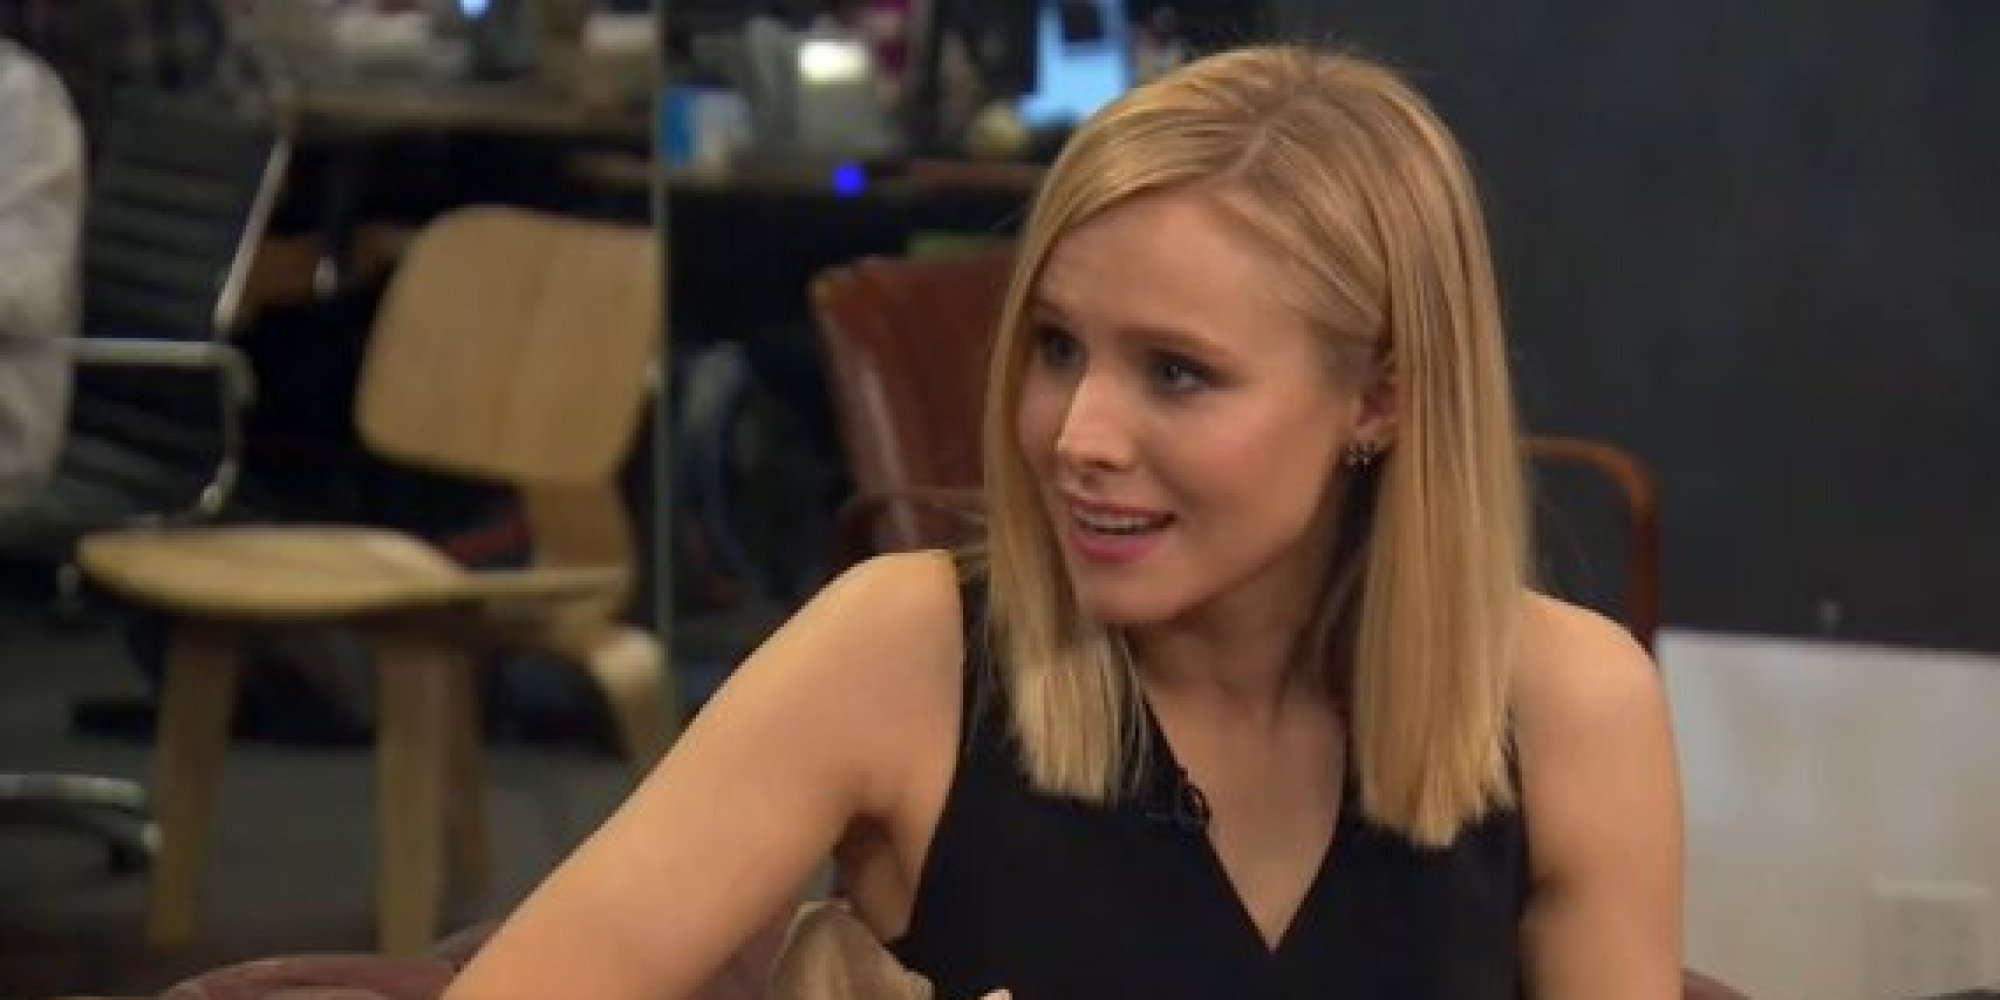 kristen bell slams the paparazzi calls them animals